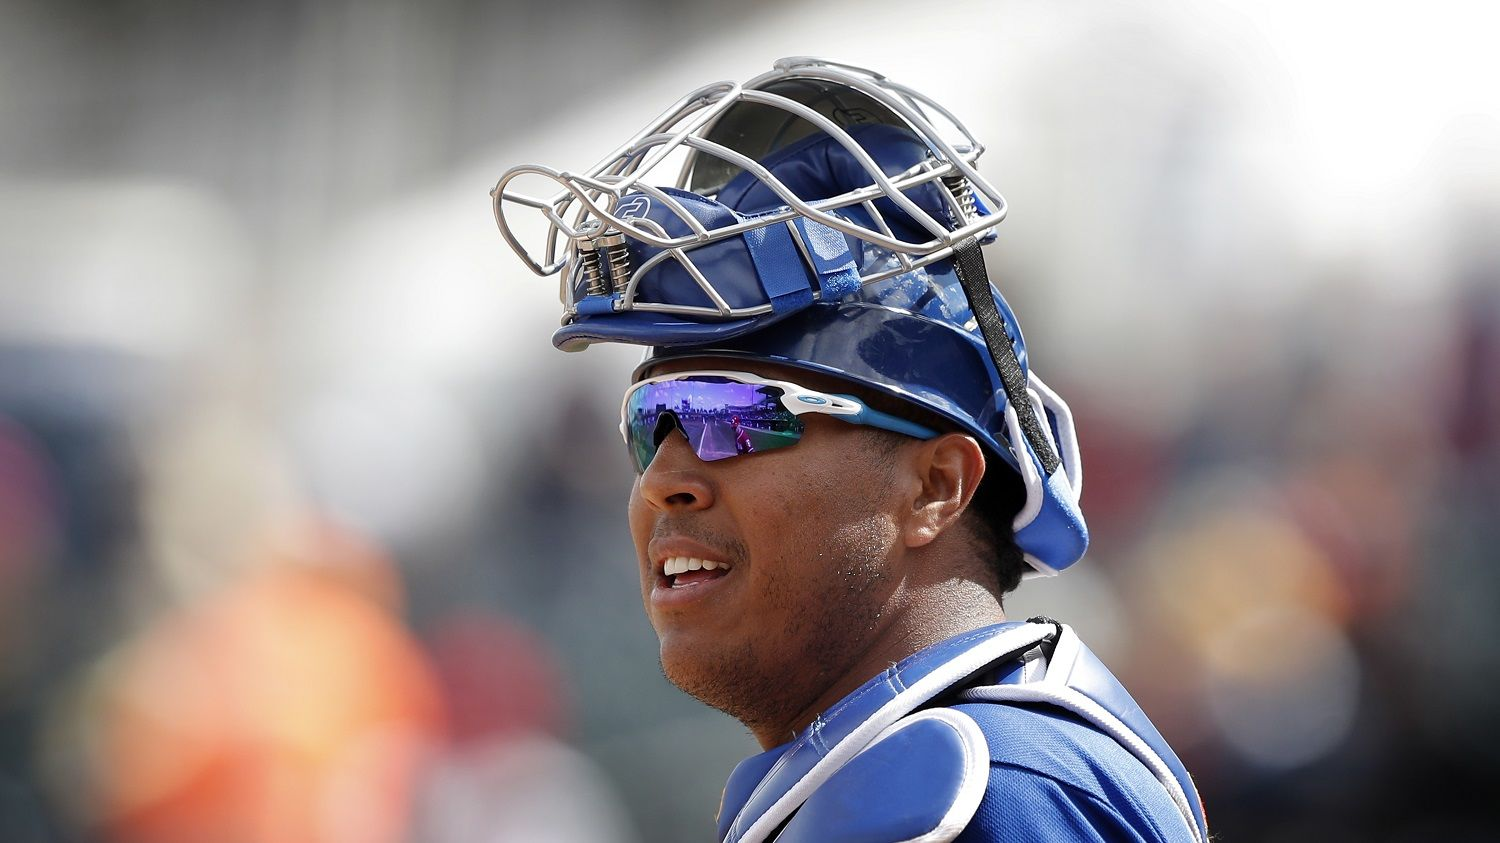 Kansas City Royals catcher Salvador Perez gets ready for a pitch during the first inning of a spring training baseball game against the Cincinnati Reds, Wednesday, Feb. 28, 2018, in Surprise, Ariz. (AP Photo/Charlie Neibergall)